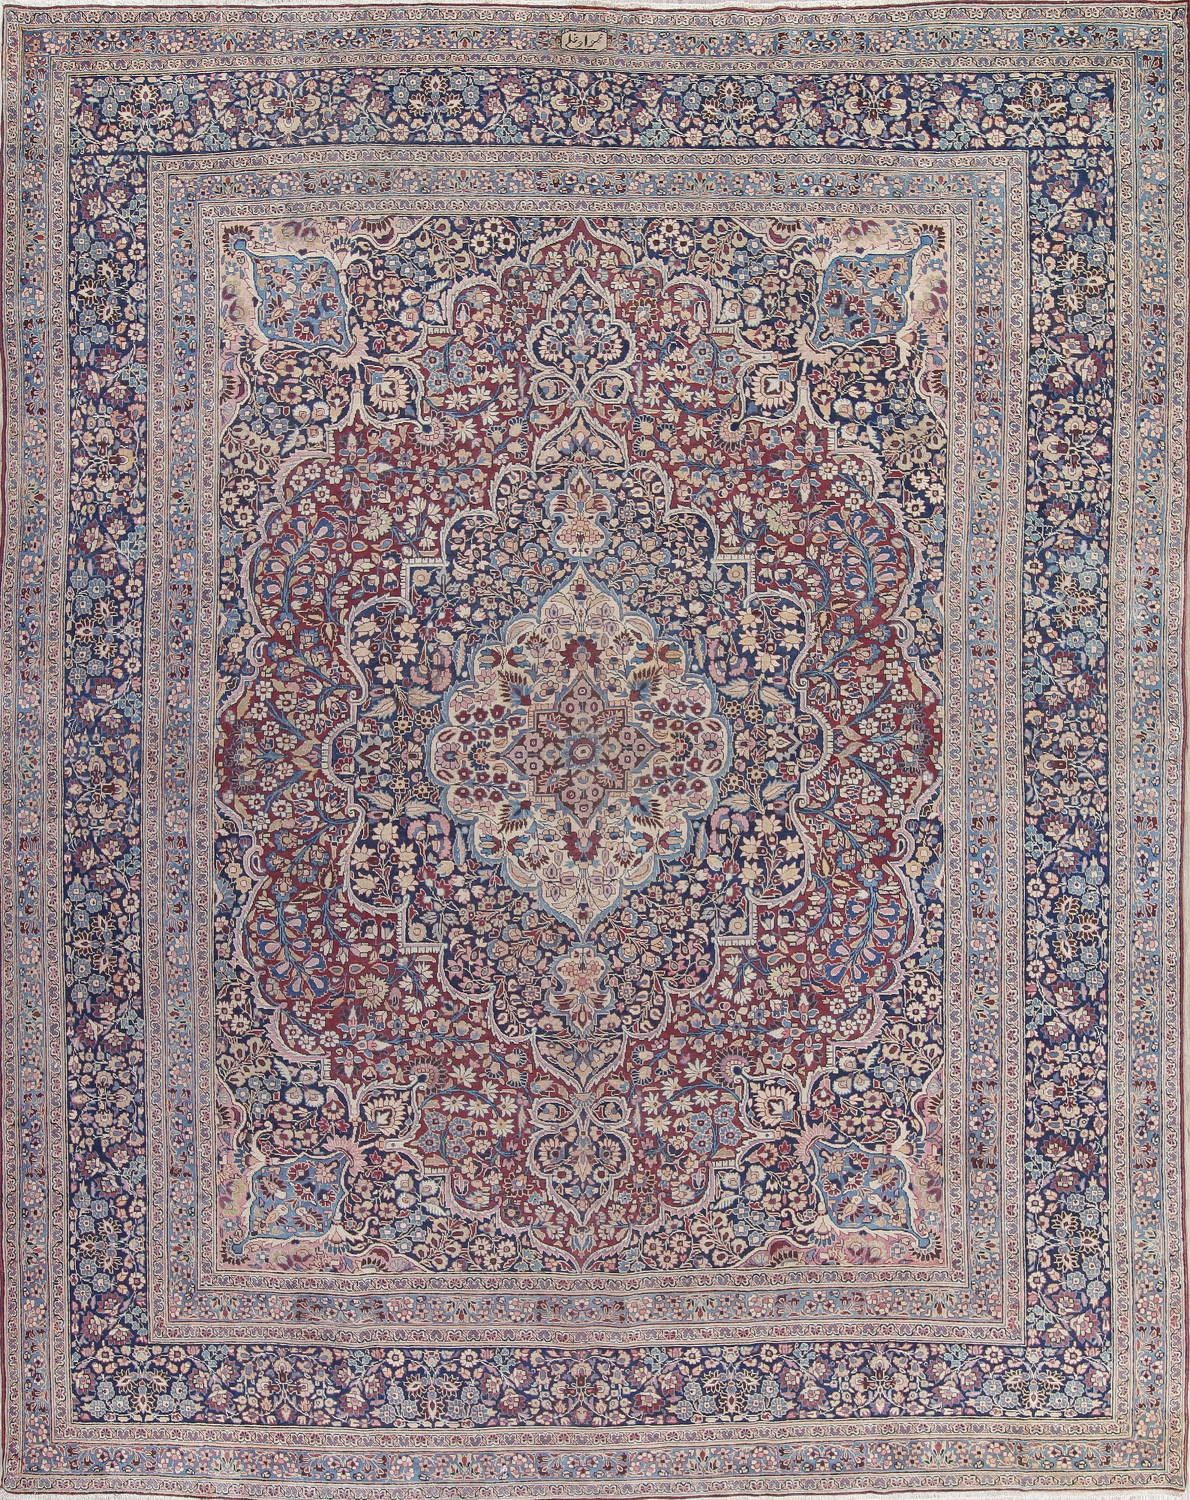 Pre-1900 Antique Floral Mashad Persian Hand-Knotted 10x13 Burgundy Area Rug image 1